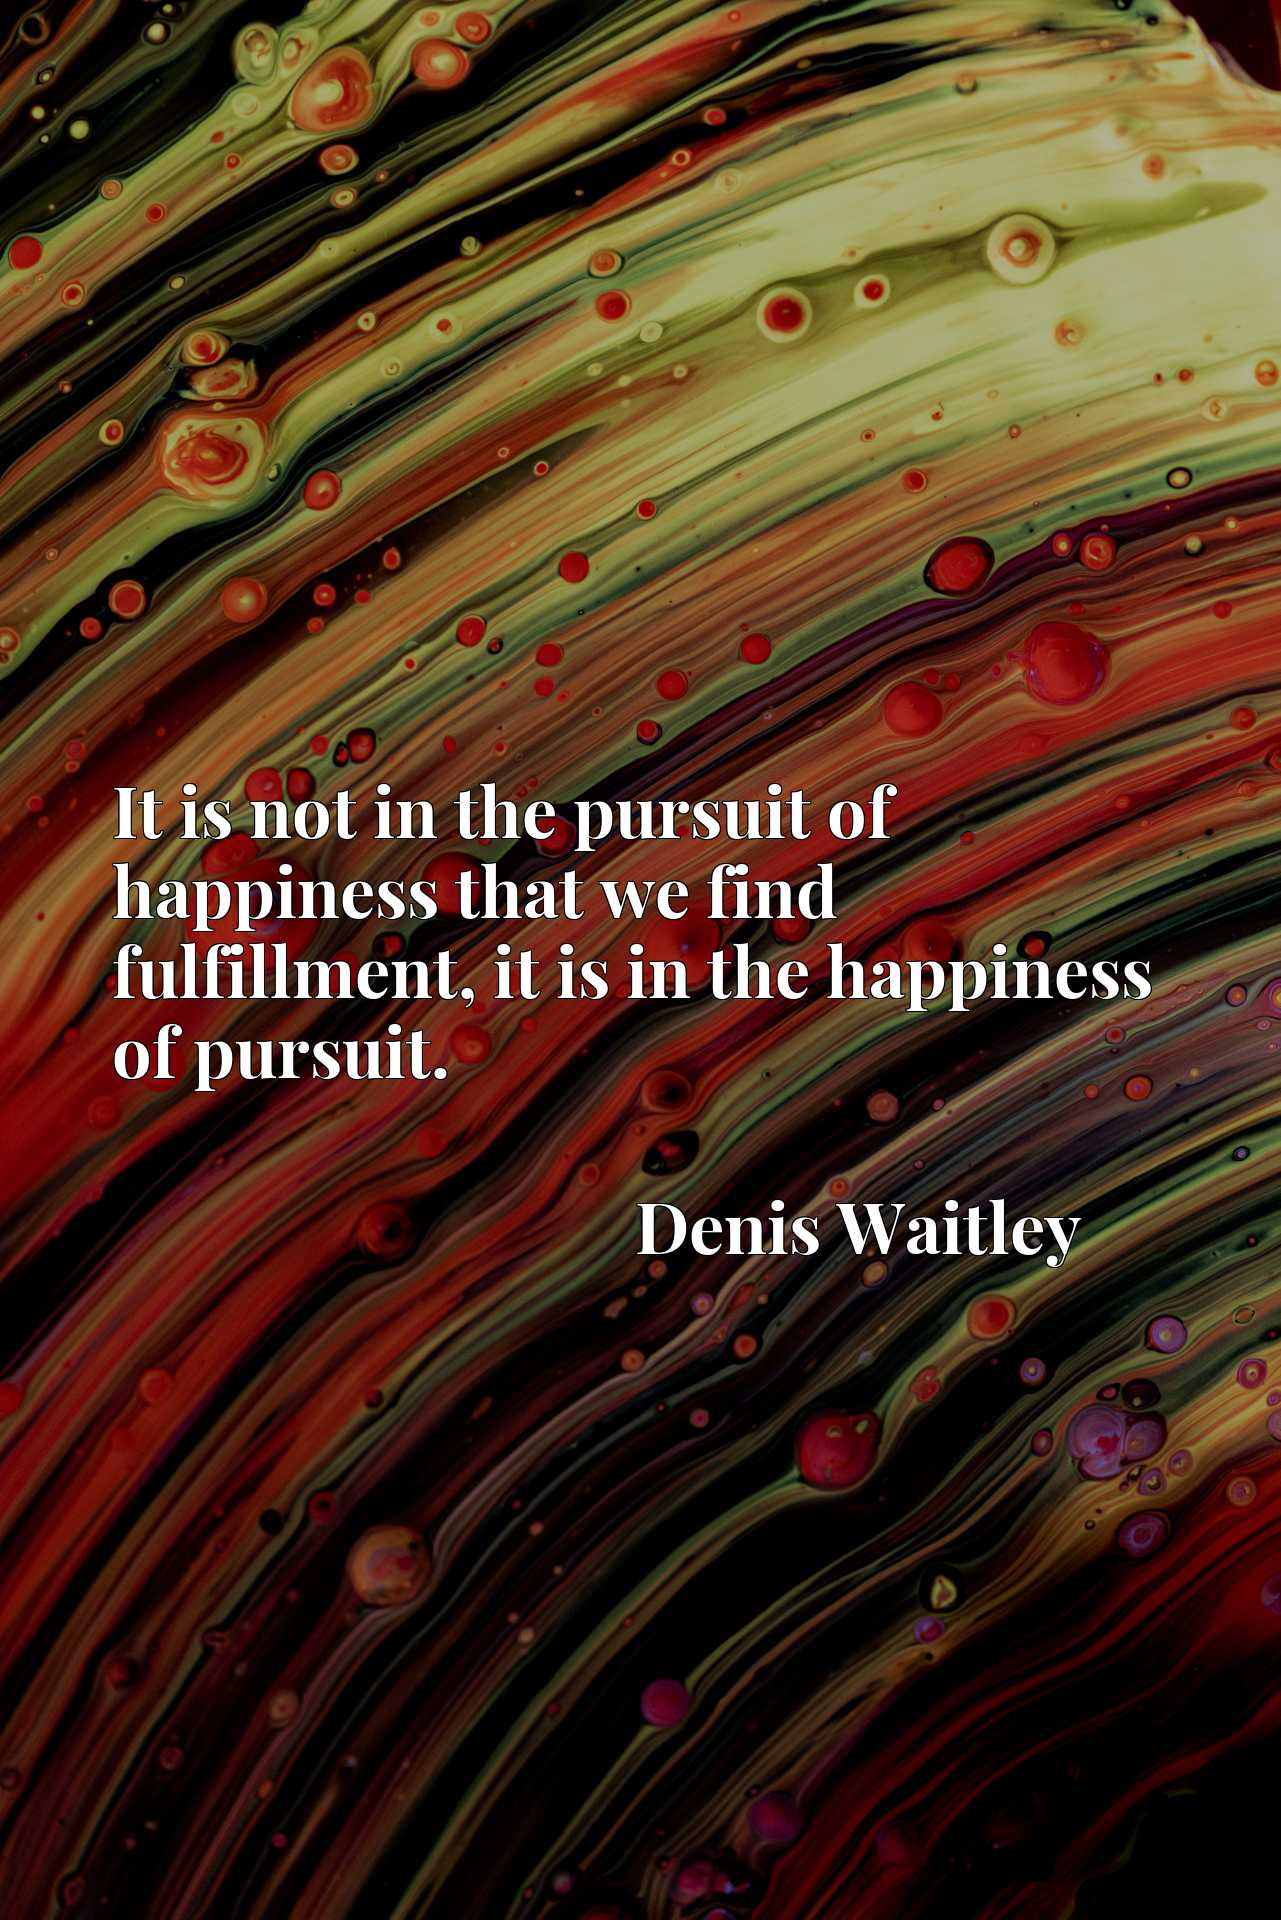 It is not in the pursuit of happiness that we find fulfillment, it is in the happiness of pursuit.